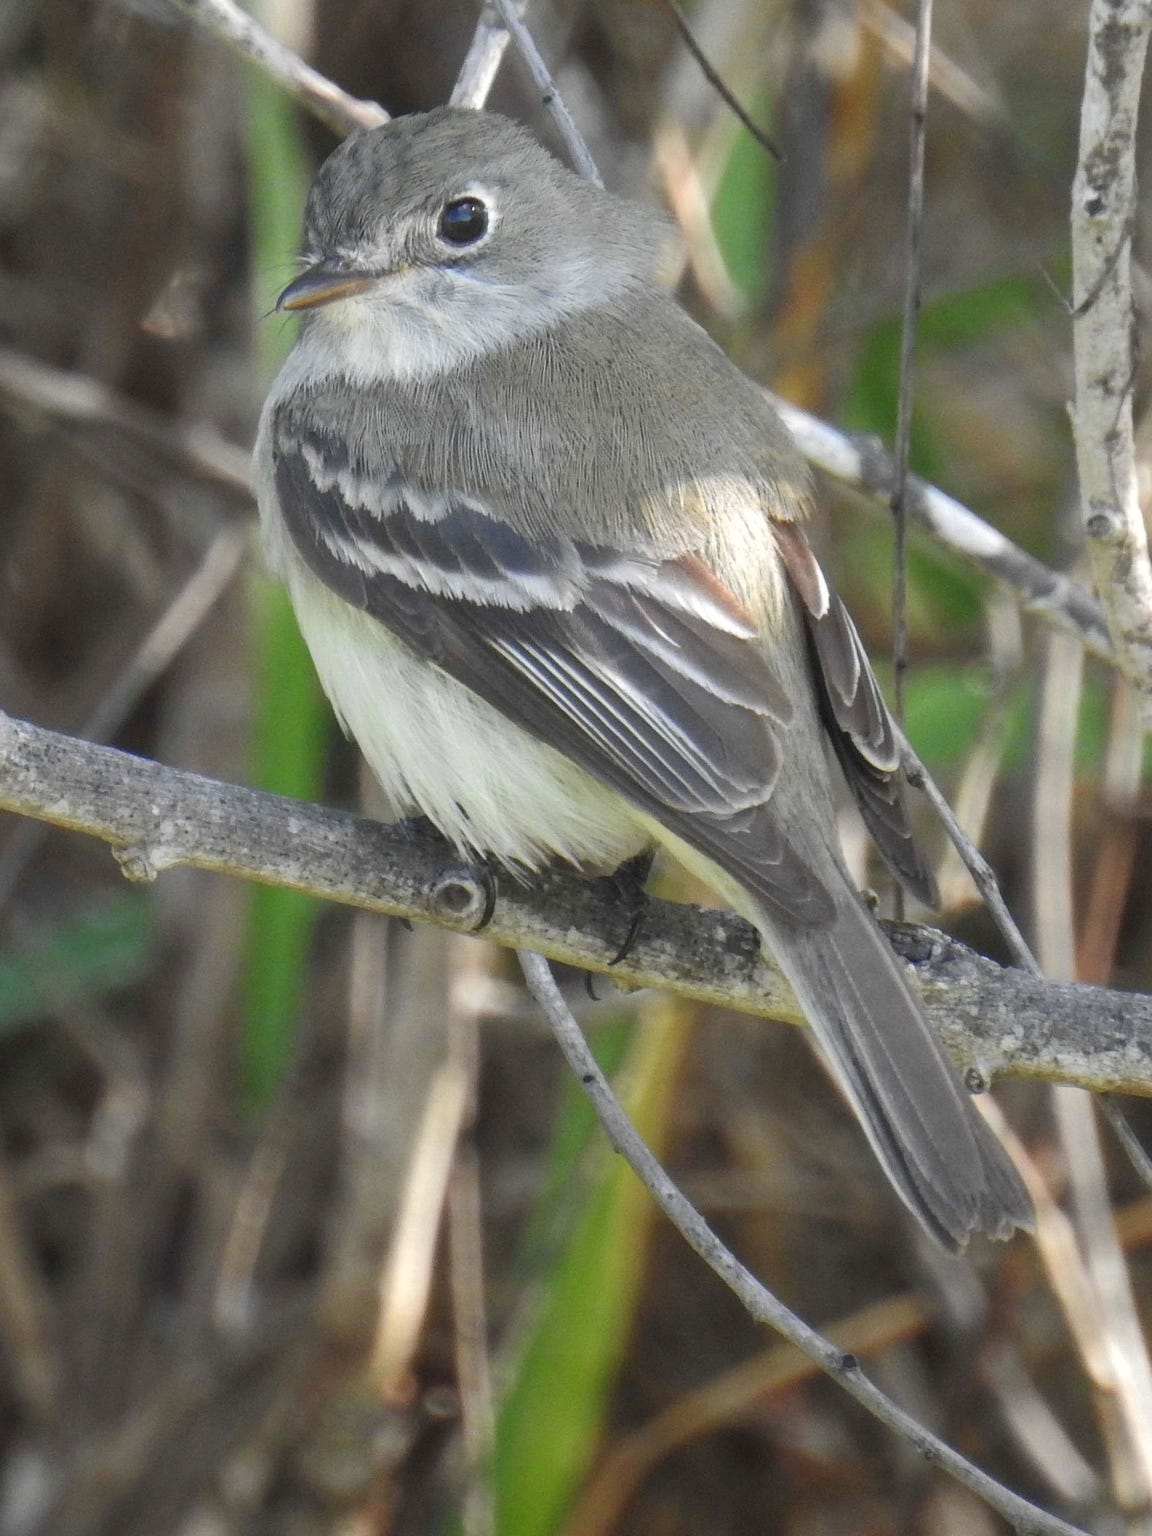 This Least Flycatcher was photographed at Hazel Bazemore